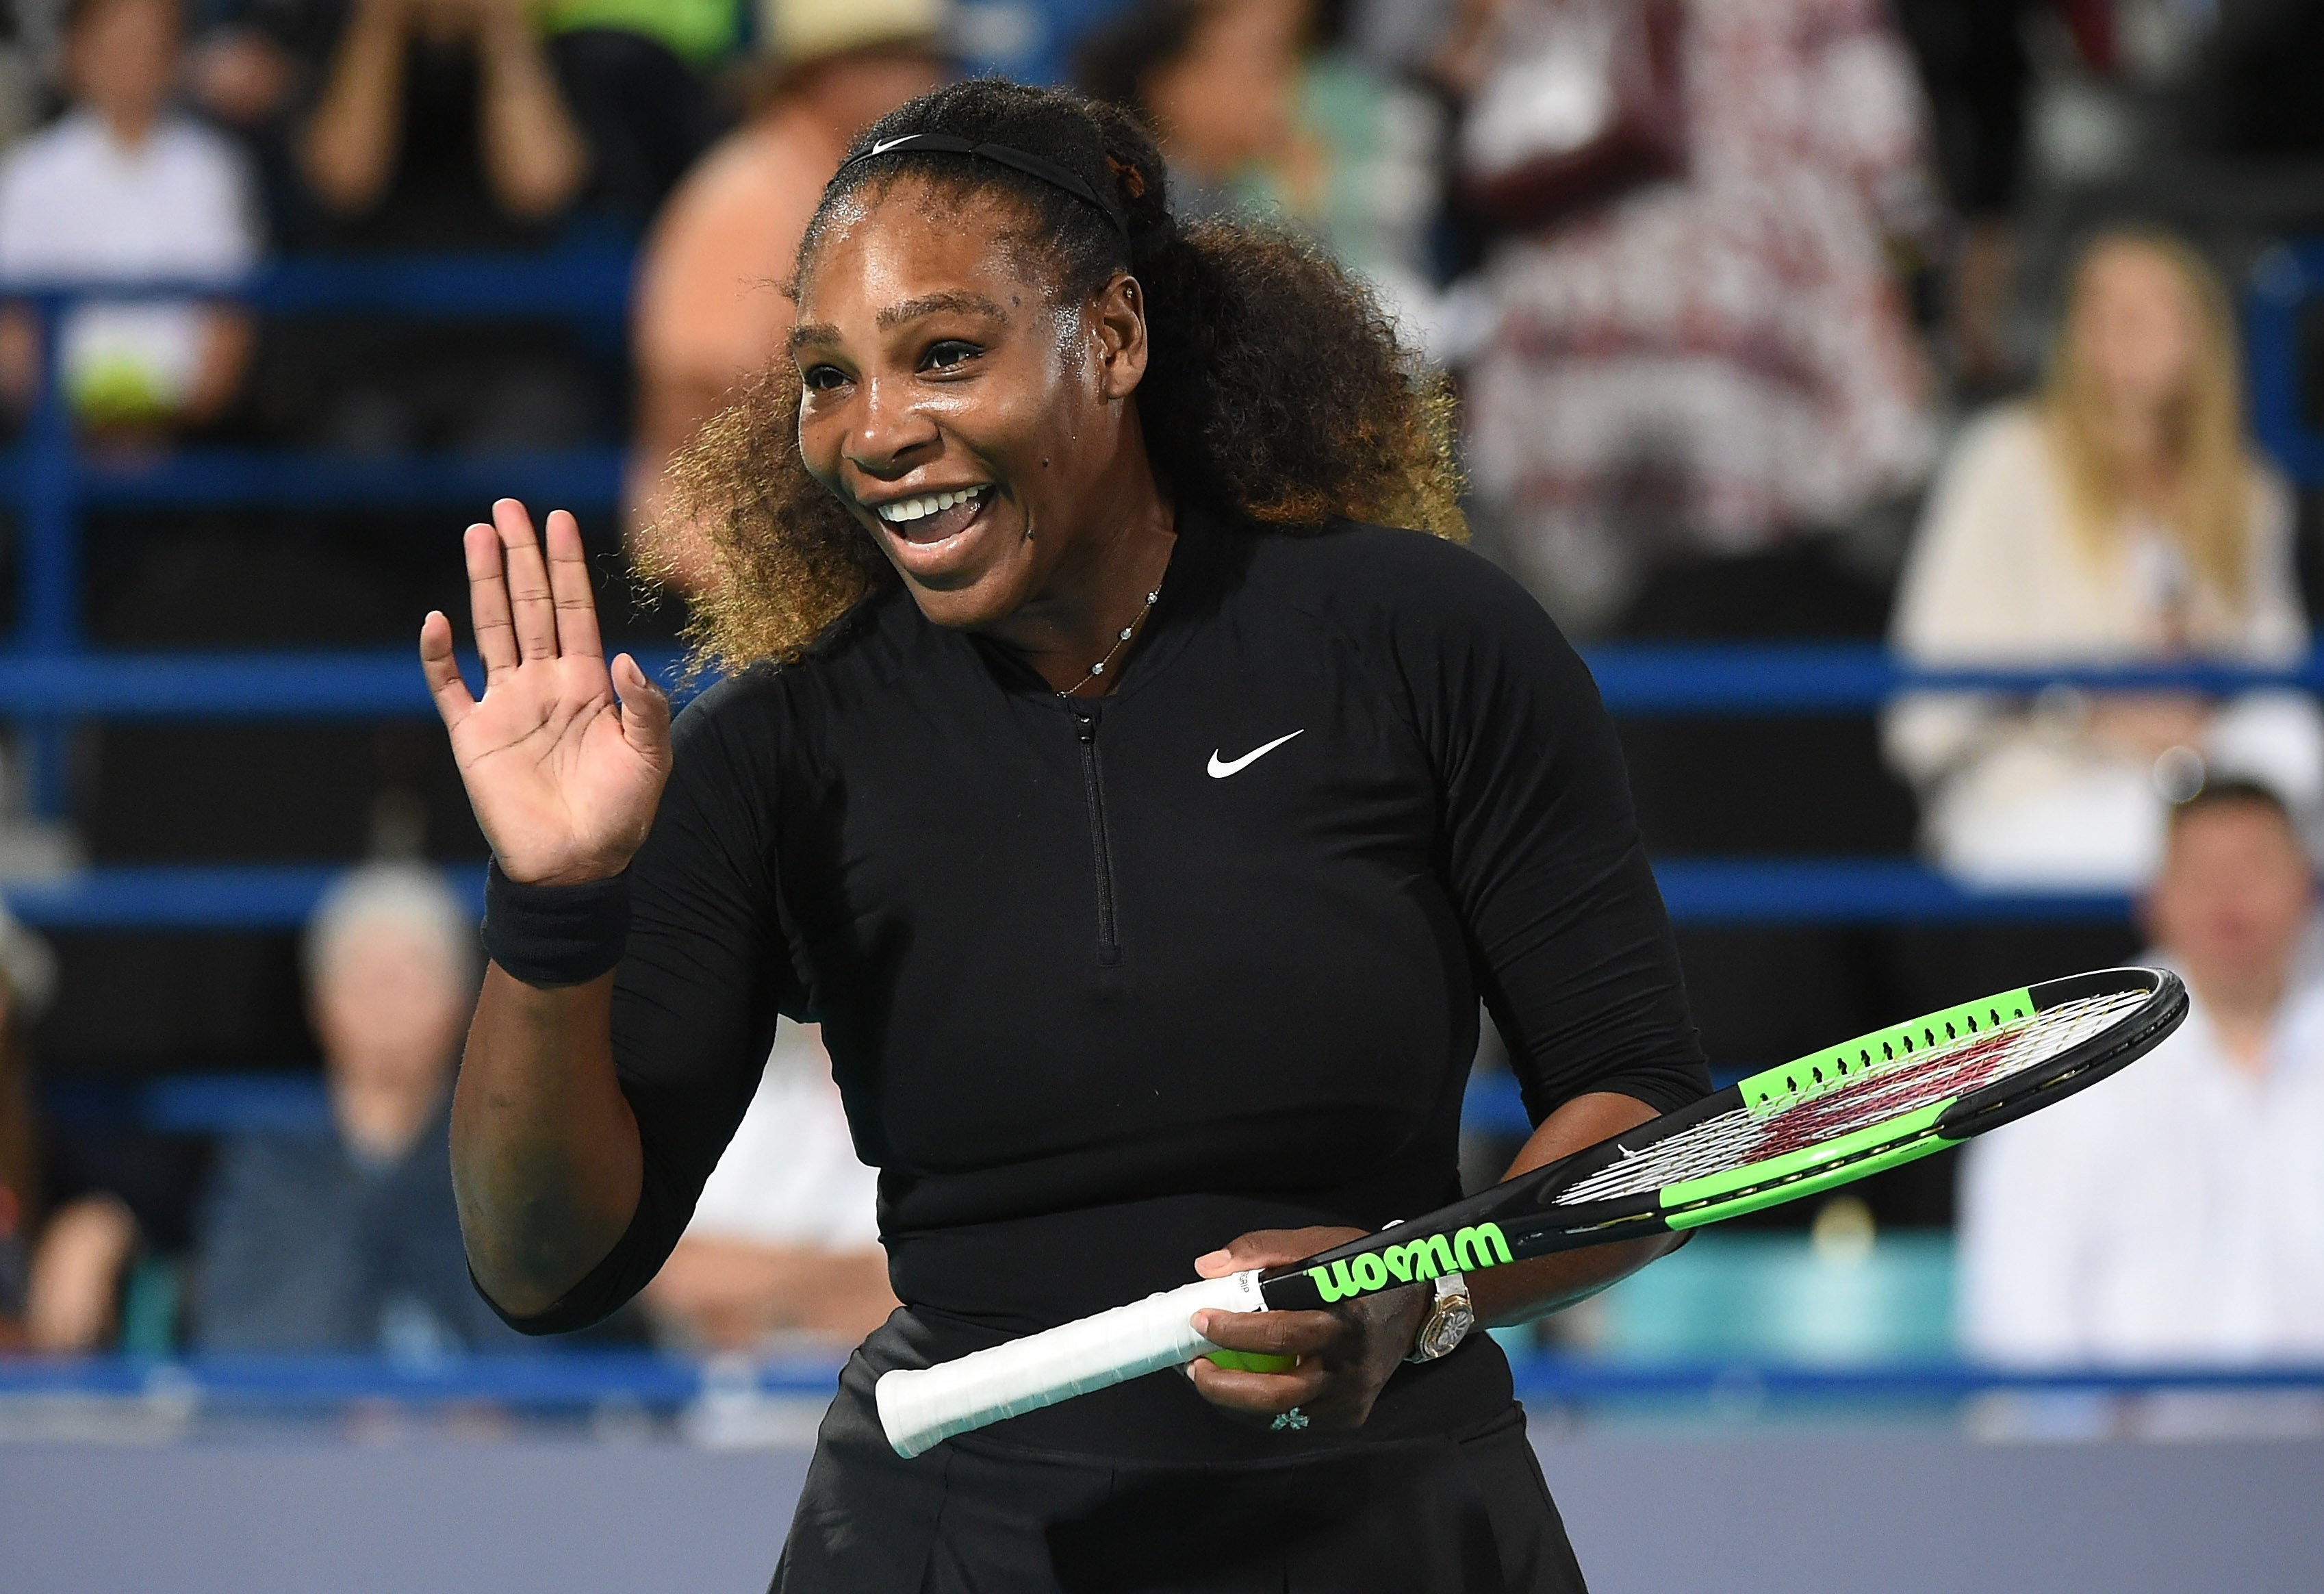 Serena Williams at the Mubadala World Tennis Championship at International Tennis Centre Zayed Sports City on December 30, 2017. | Photo: Getty Images